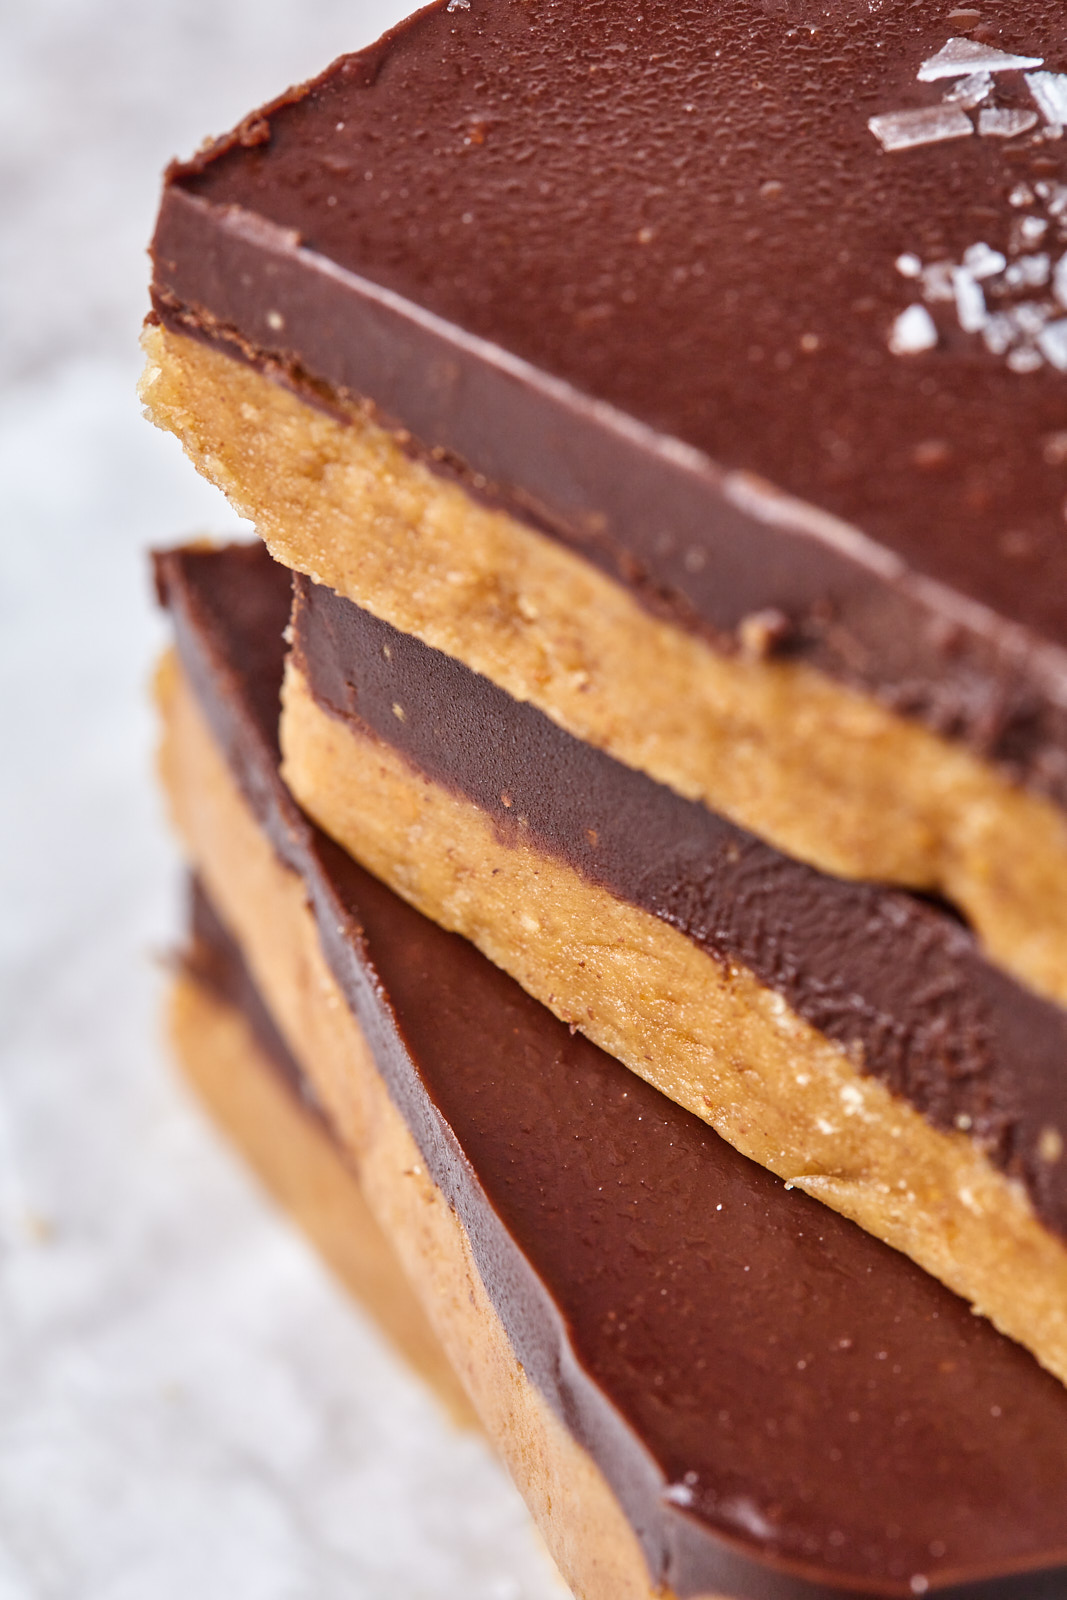 Bake Chocolate Peanut Butter Bars